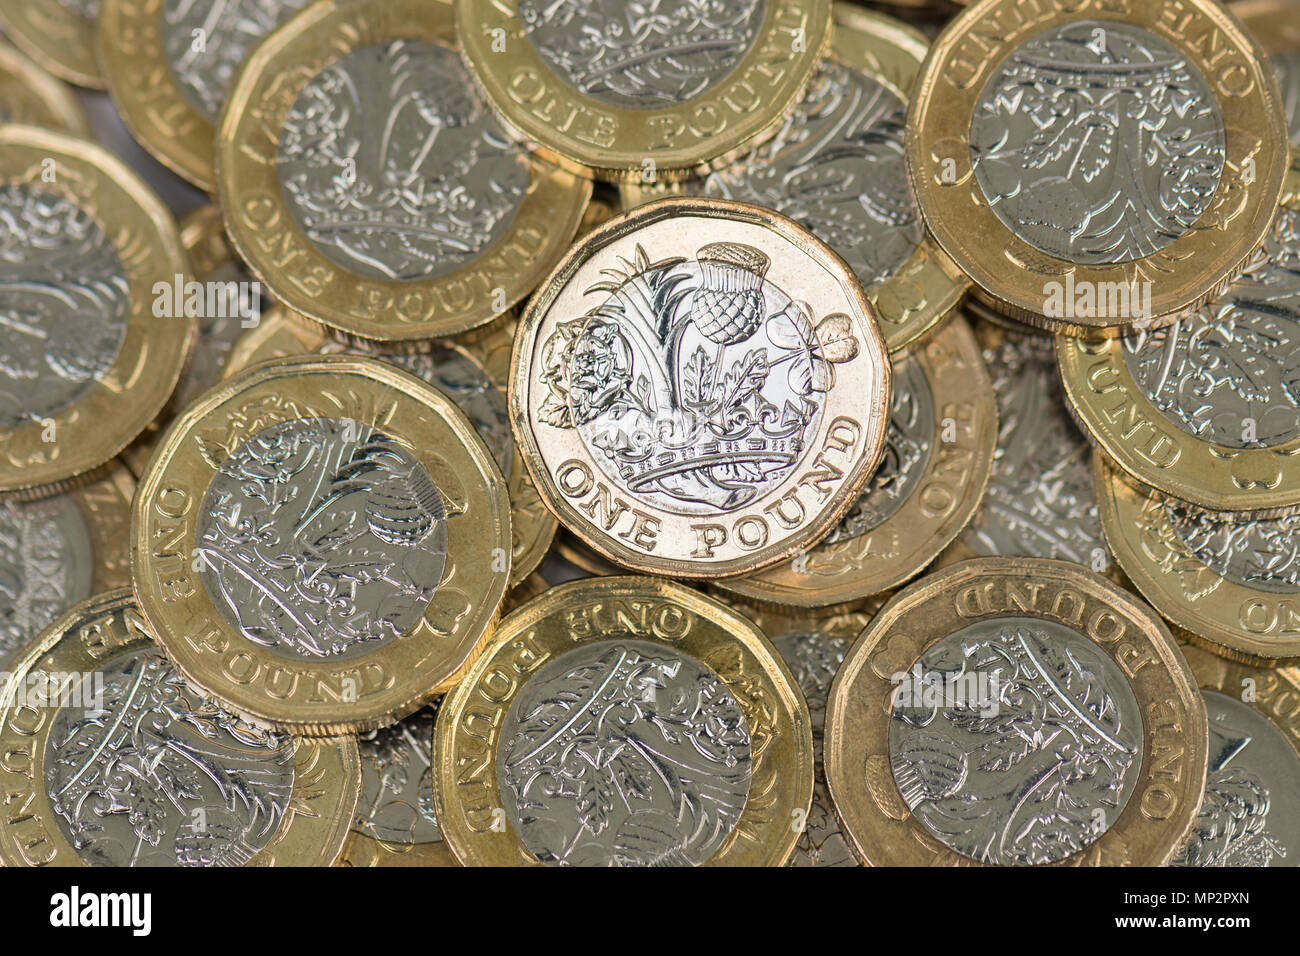 pile of pound coins from above - Stock Image